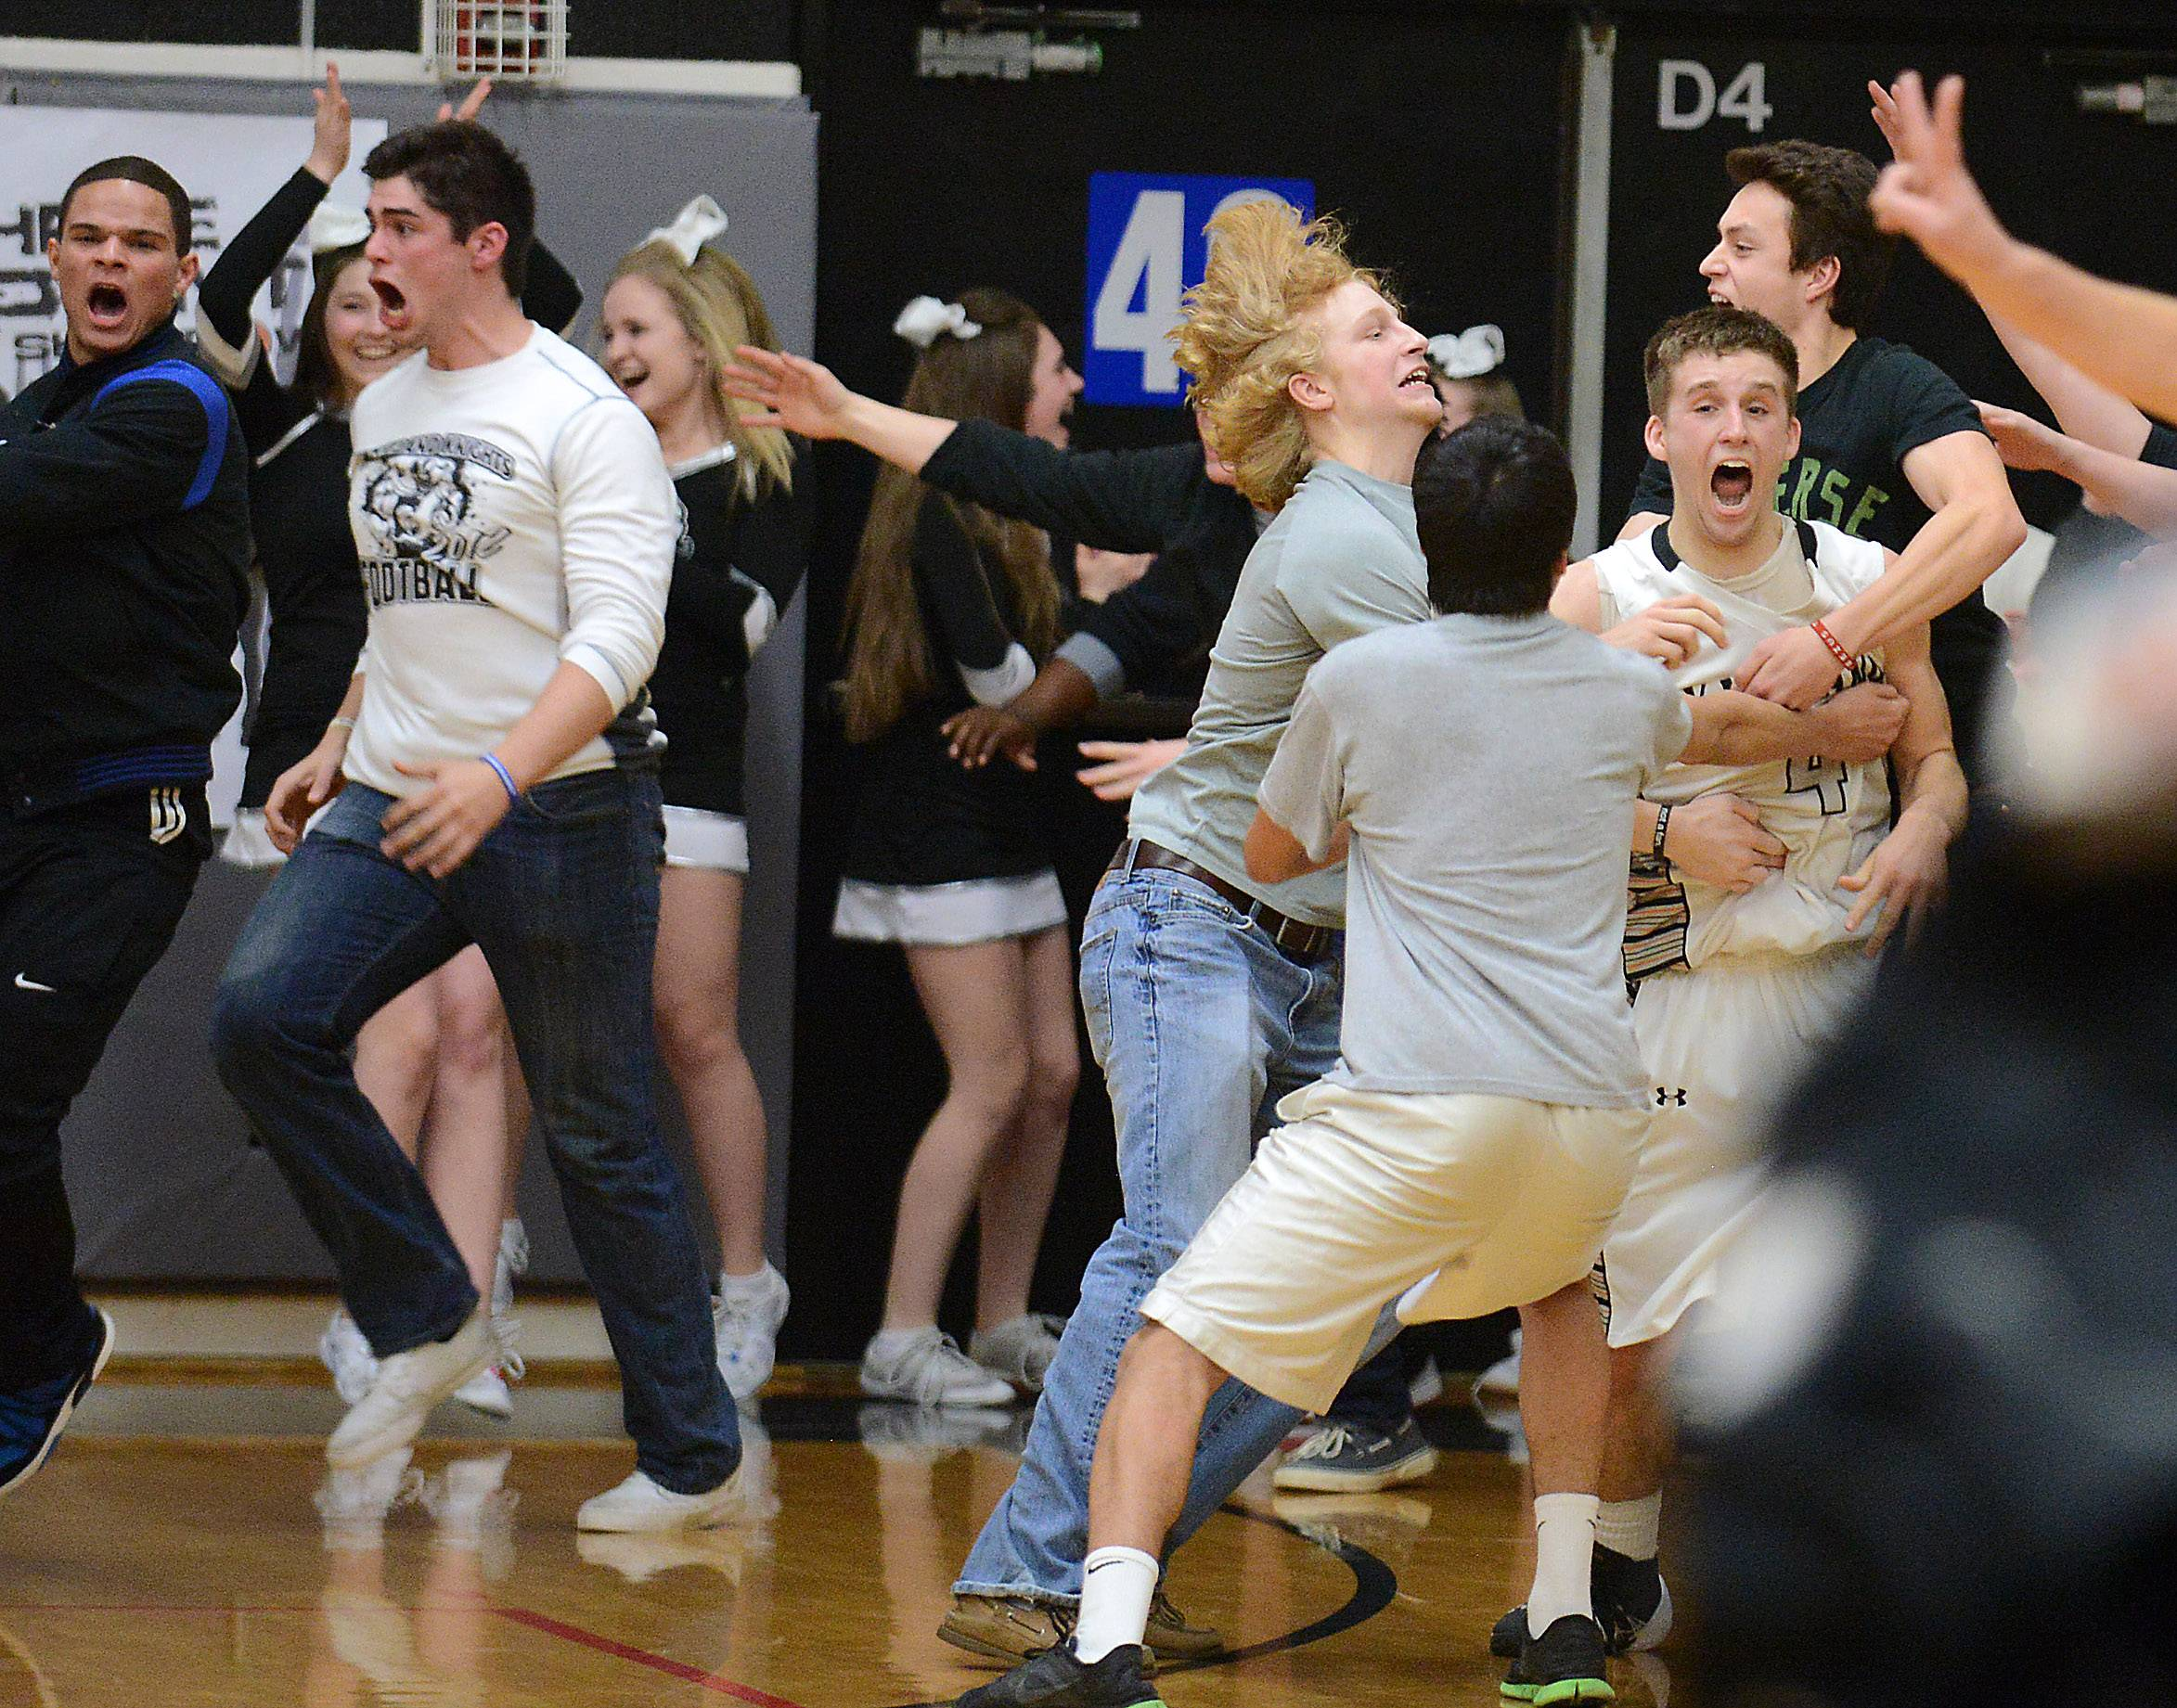 Kaneland's Drew David, right, is swarmed by fans after hitting a last-second game-winning shot .